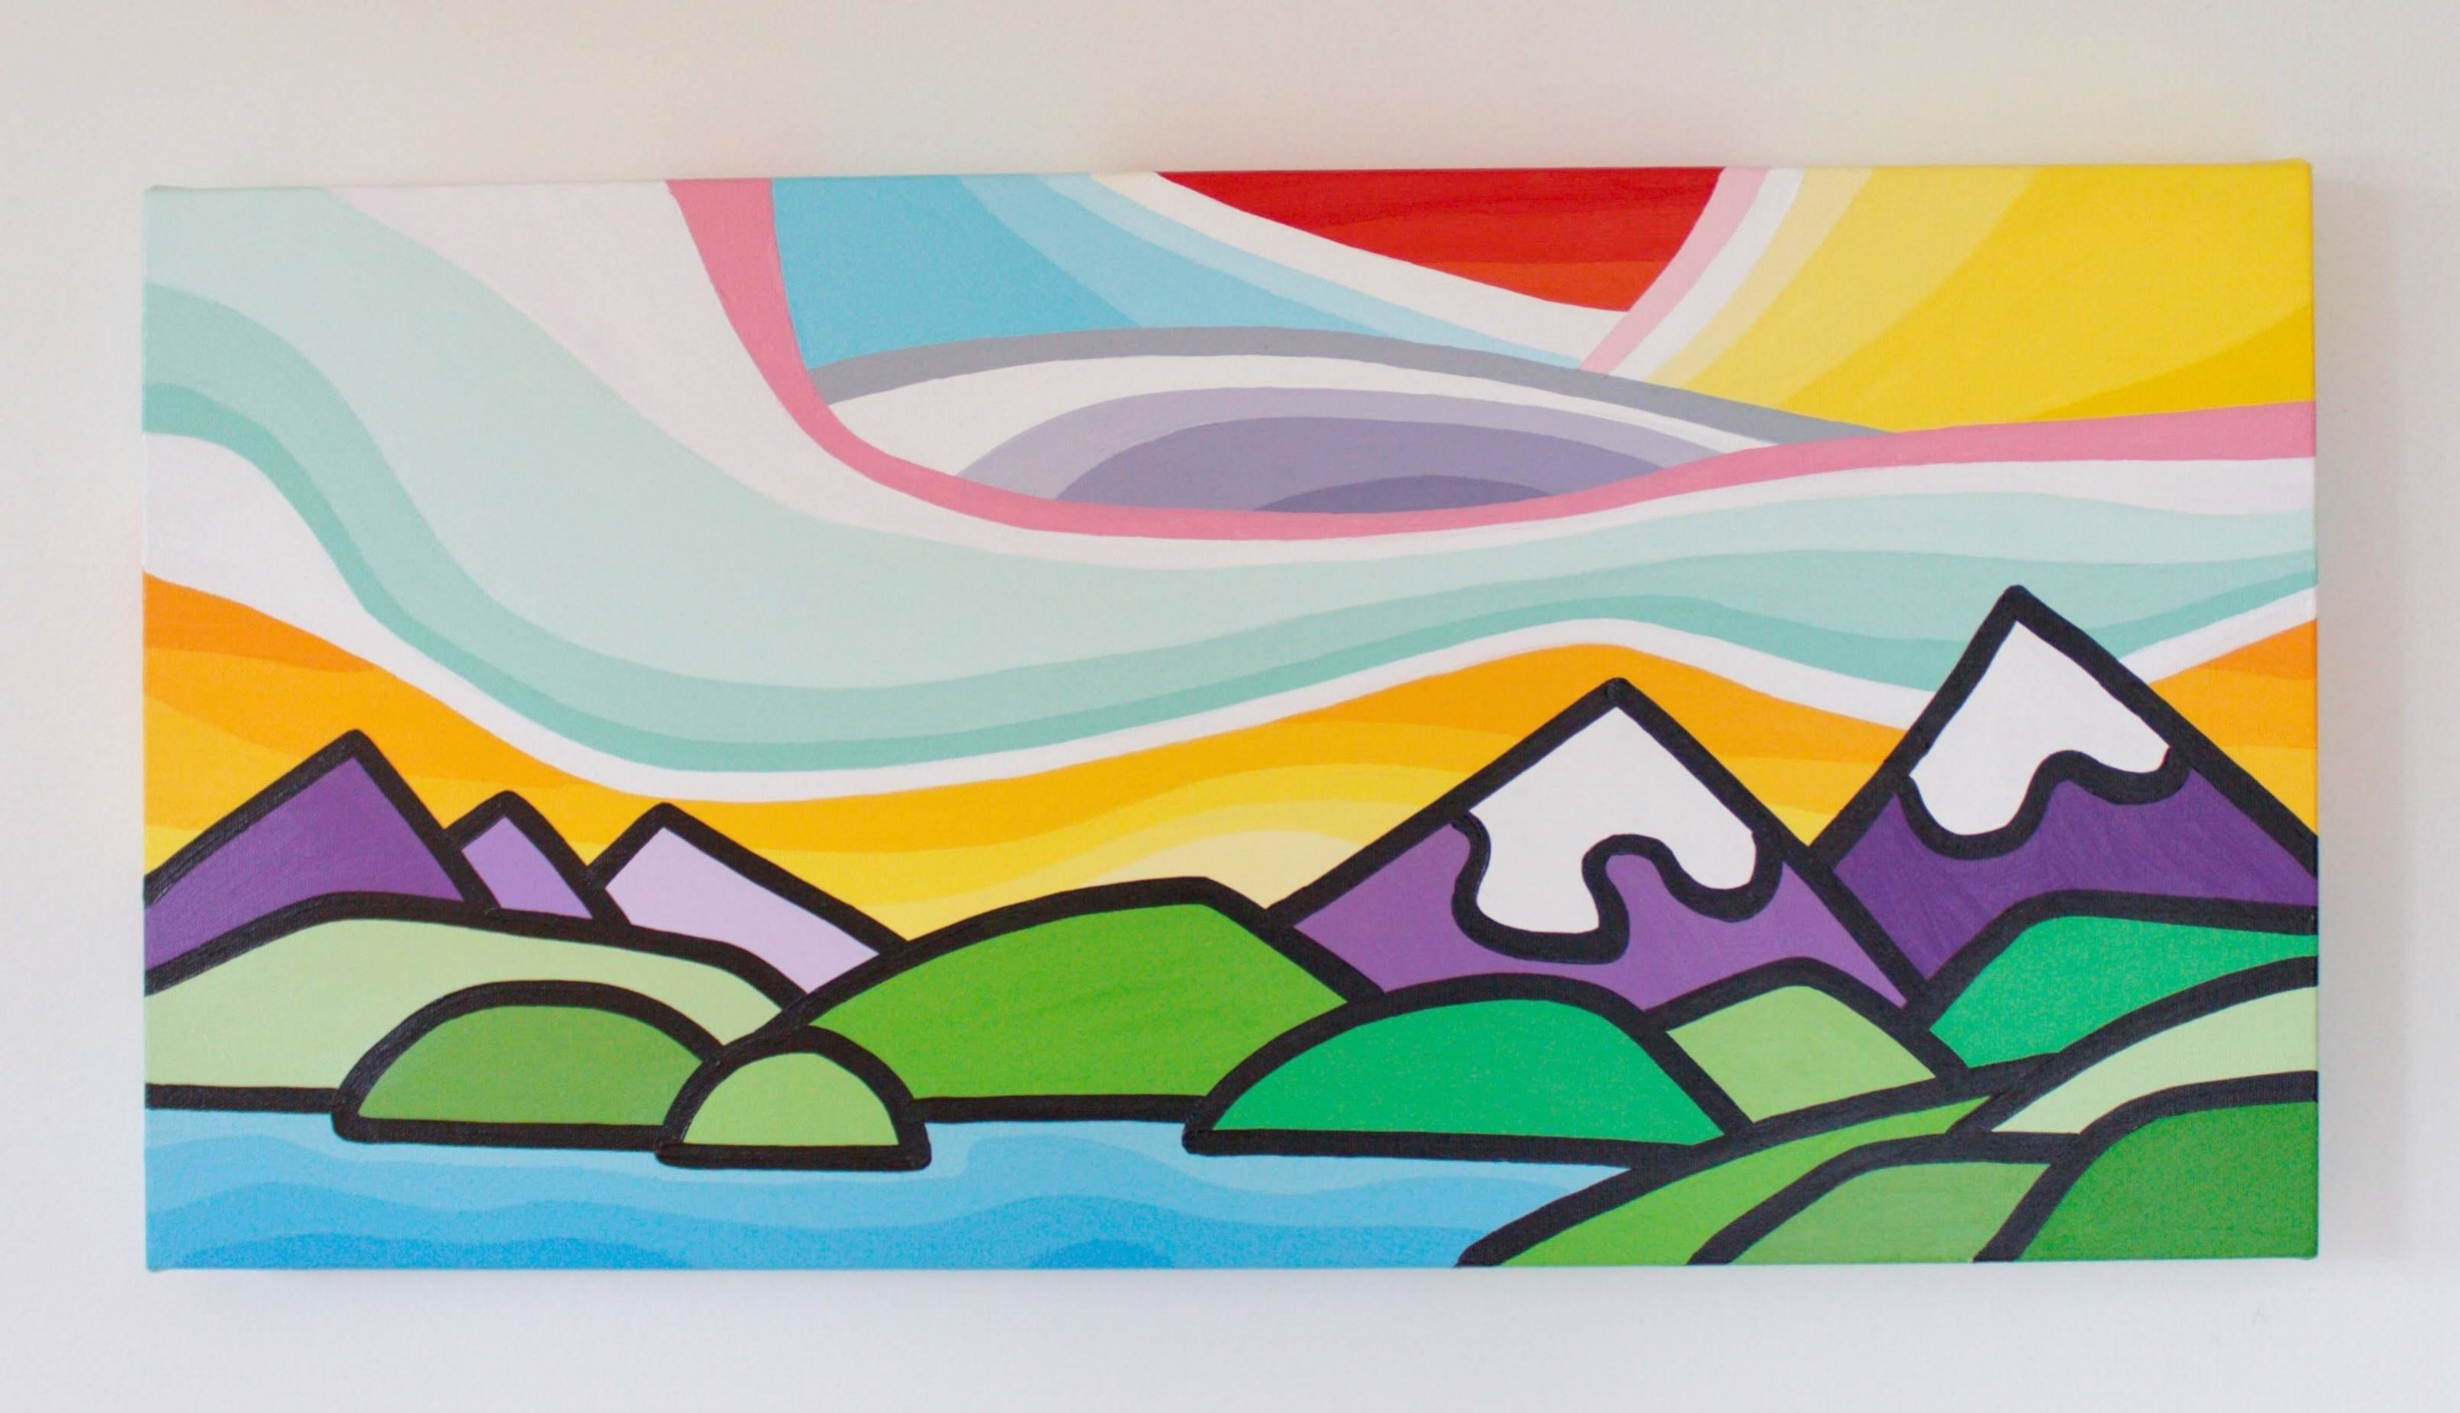 "Mountain Love - Size: 12"" x 24"" acrylic on canvasPrice: SOLD"